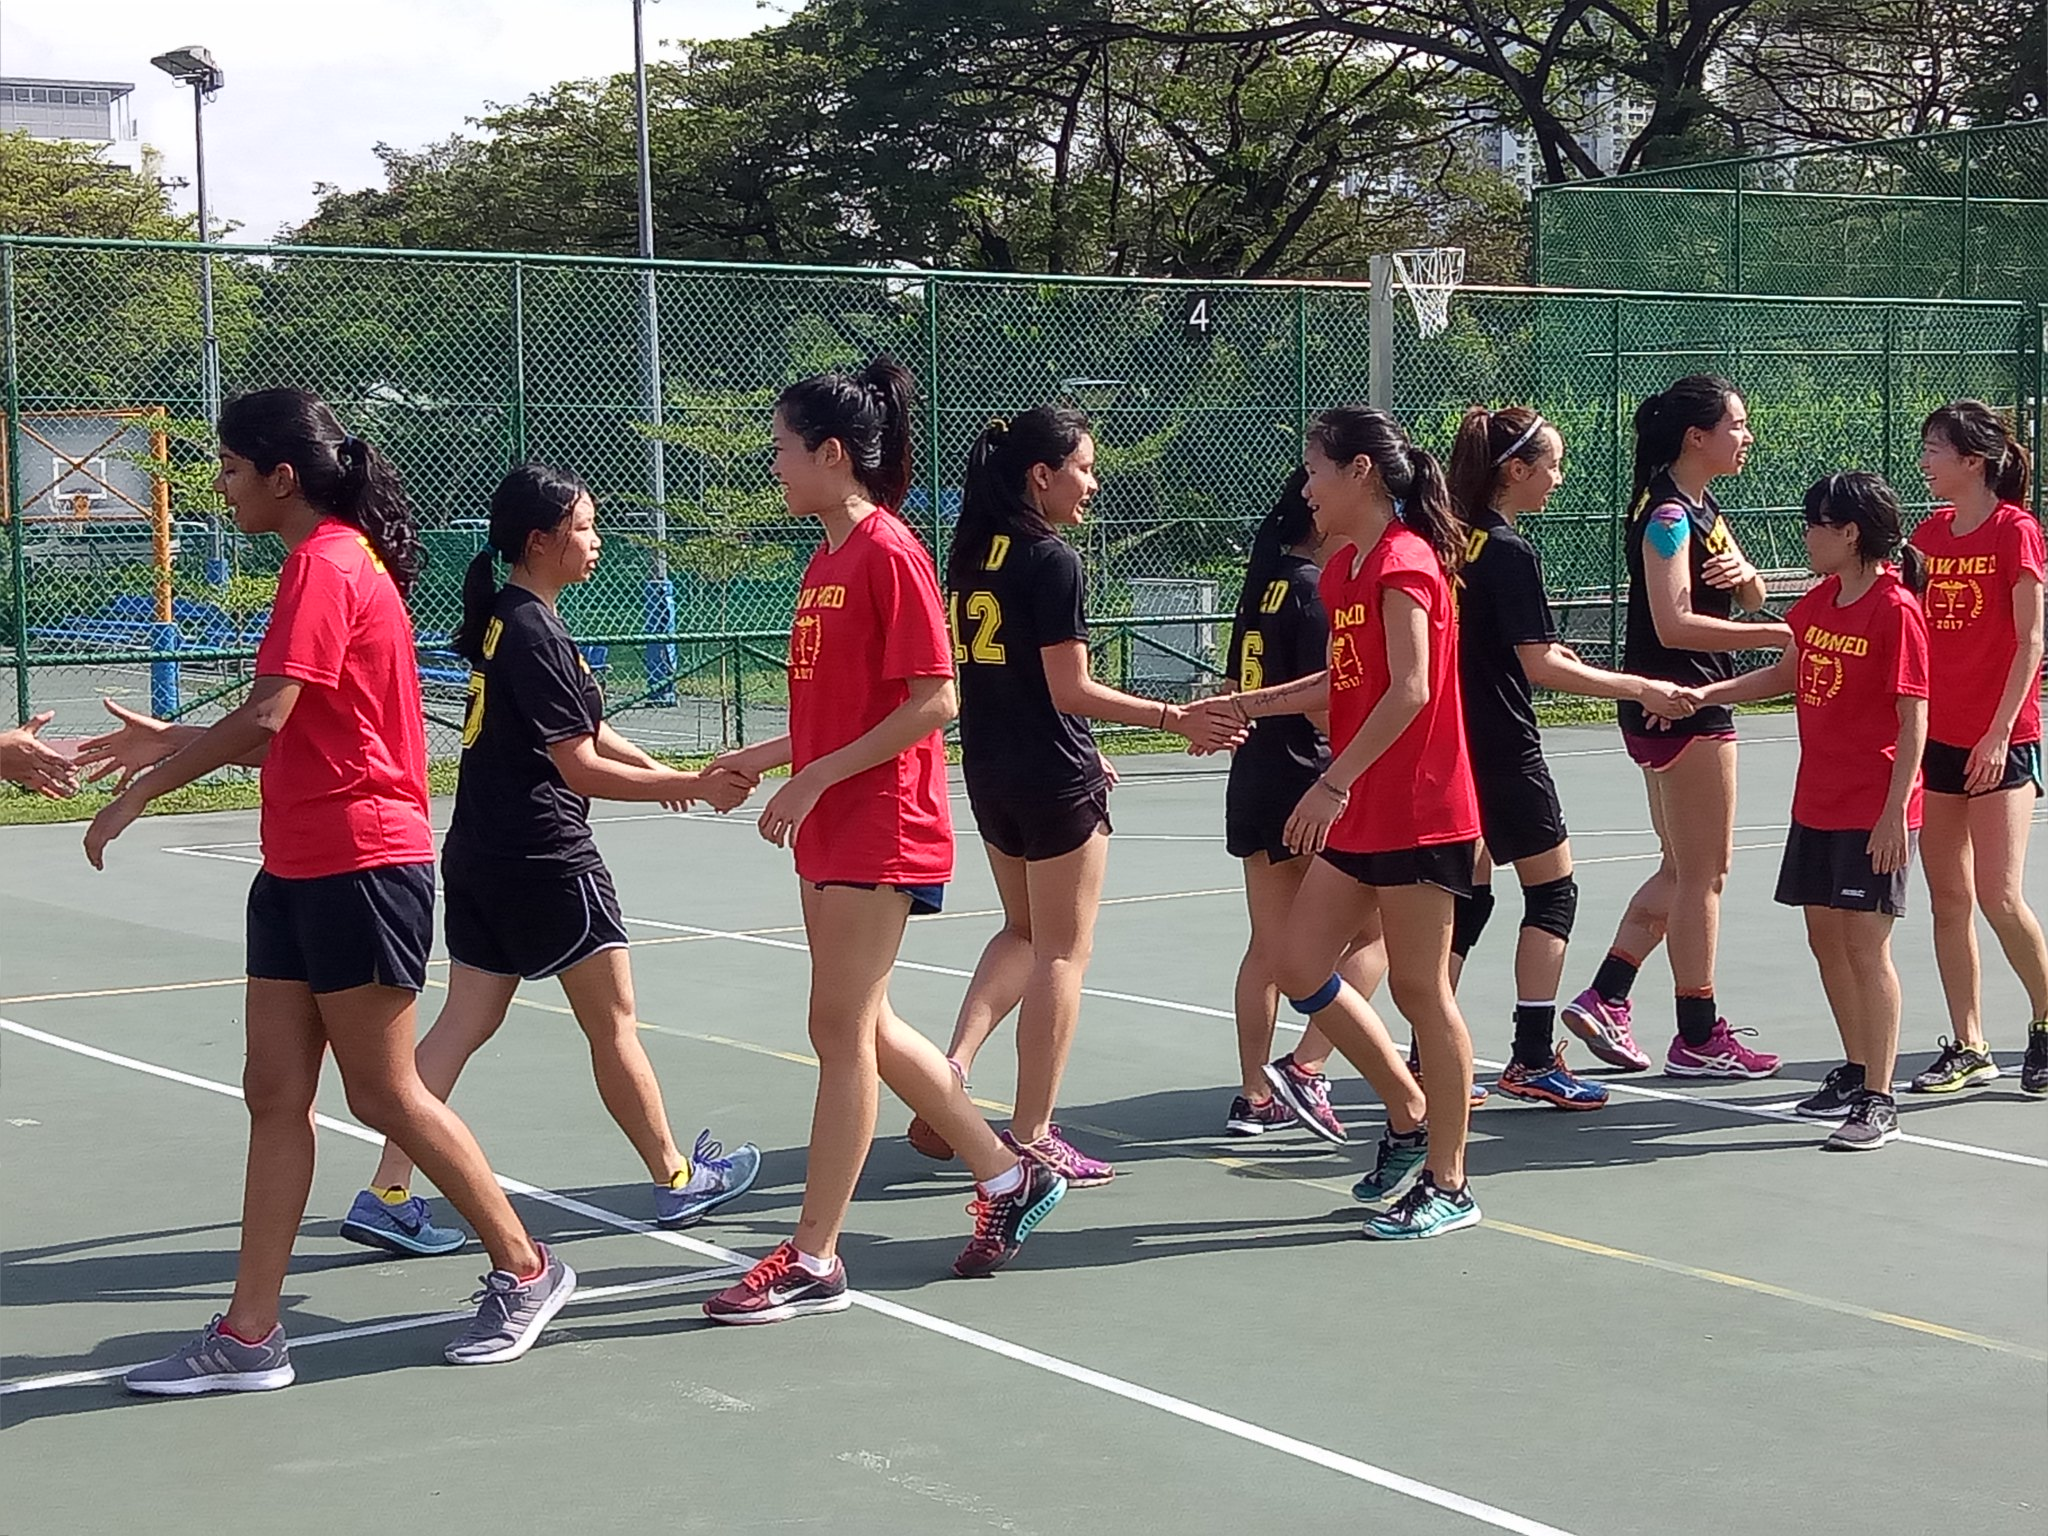 Shaking hands with the opponents after the match, thanking one another for a great game played.